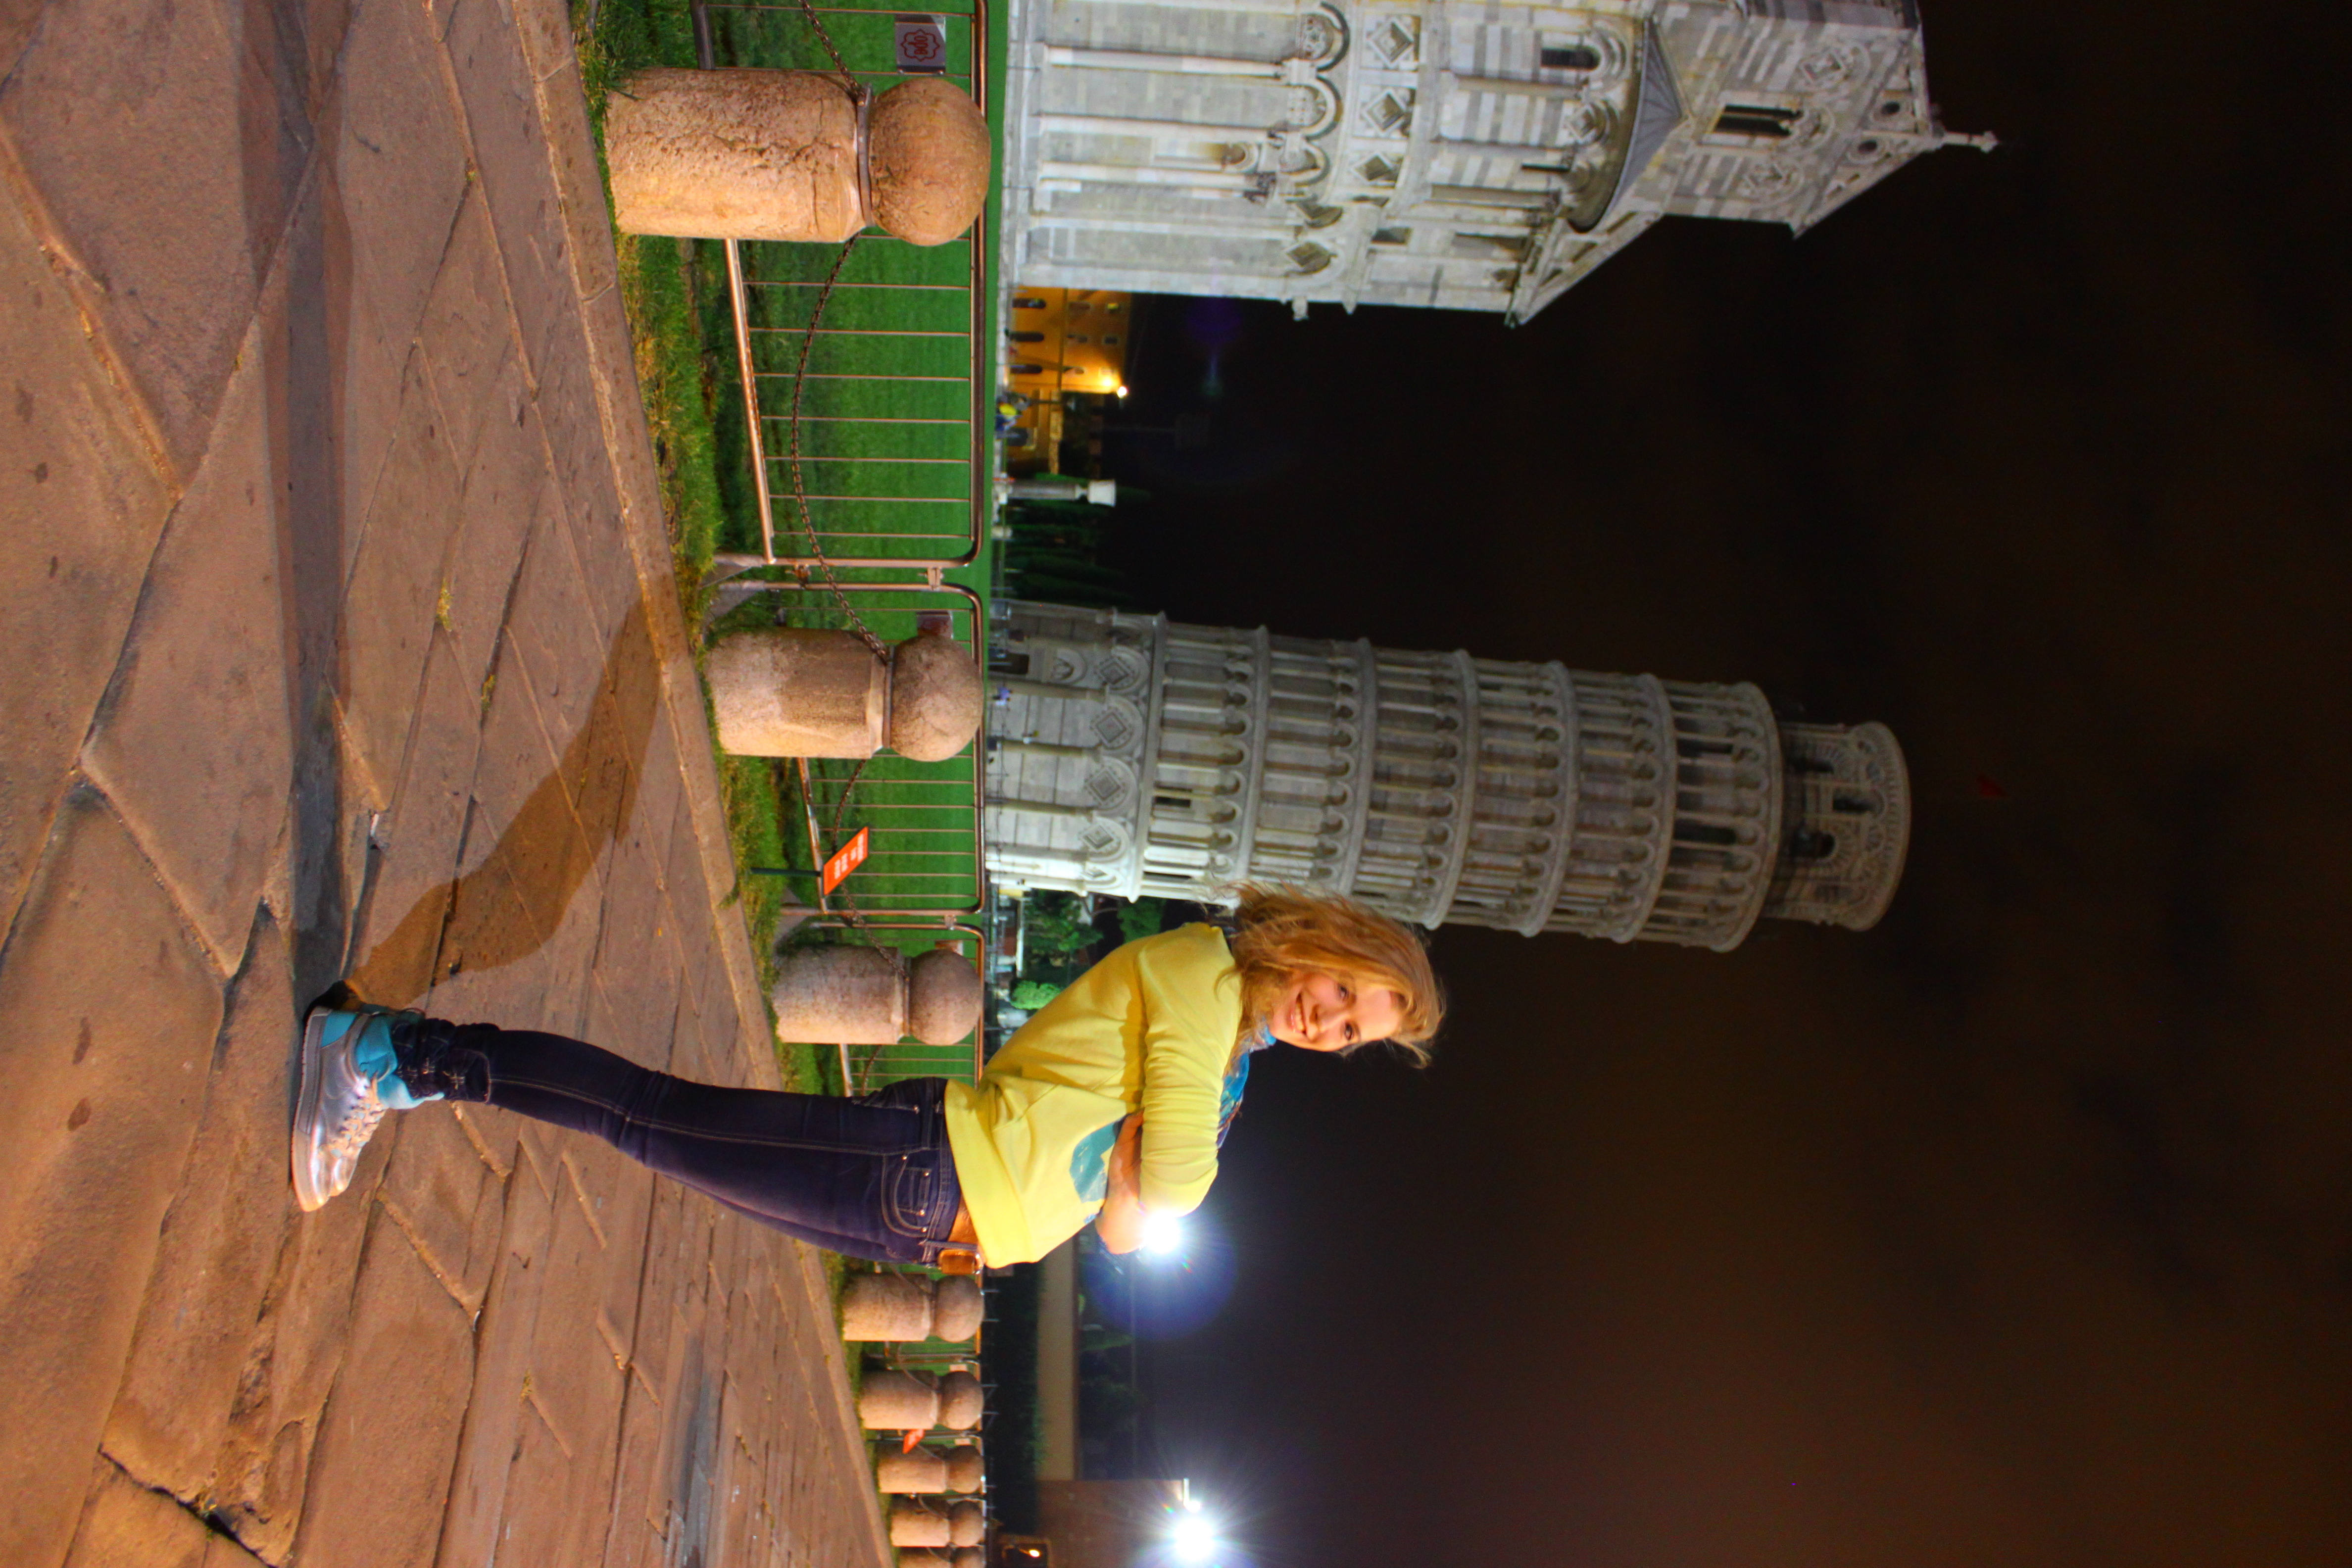 My contribution to Piza tower support Piazza del Duomo, Pisa - Italy Anna Urukova